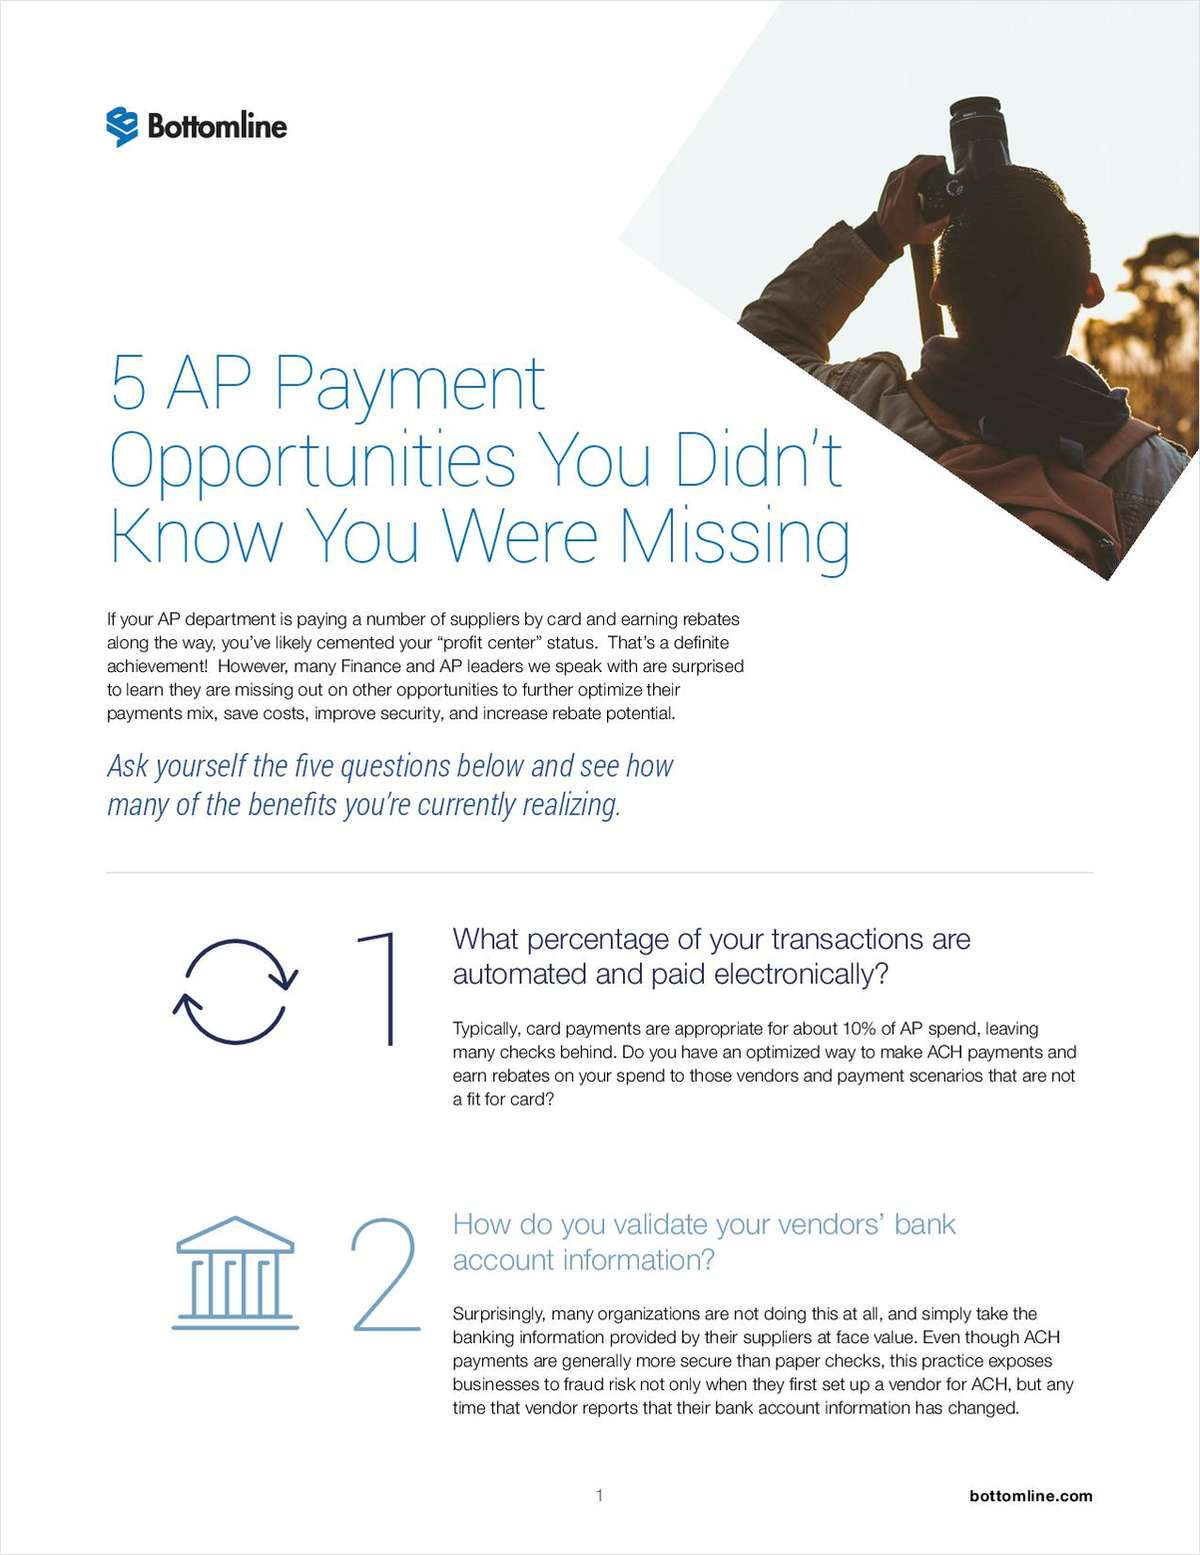 5 AP Payment Opportunities You Didn't Know You Were Missing